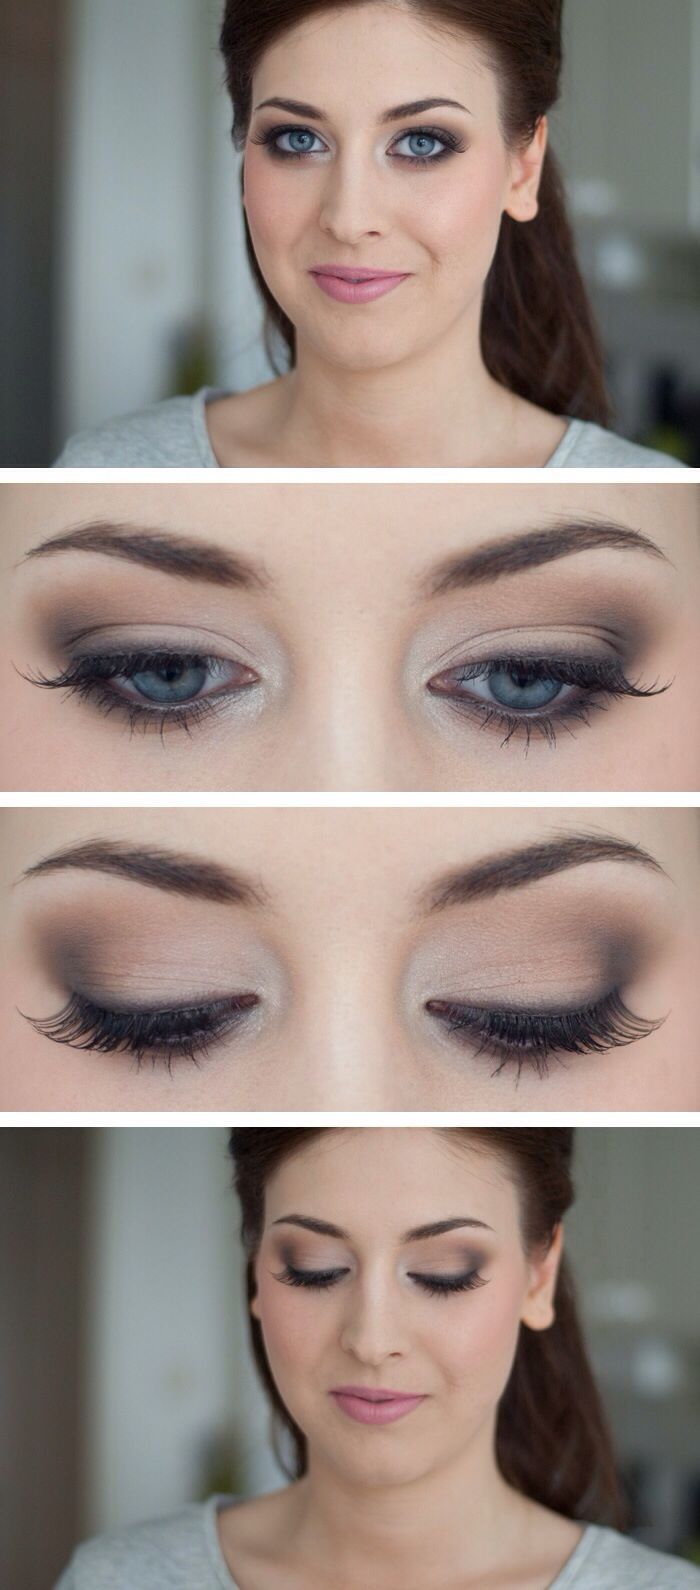 My go to look. Use this as a fall back when I can't be bothered being creative. Great staple look